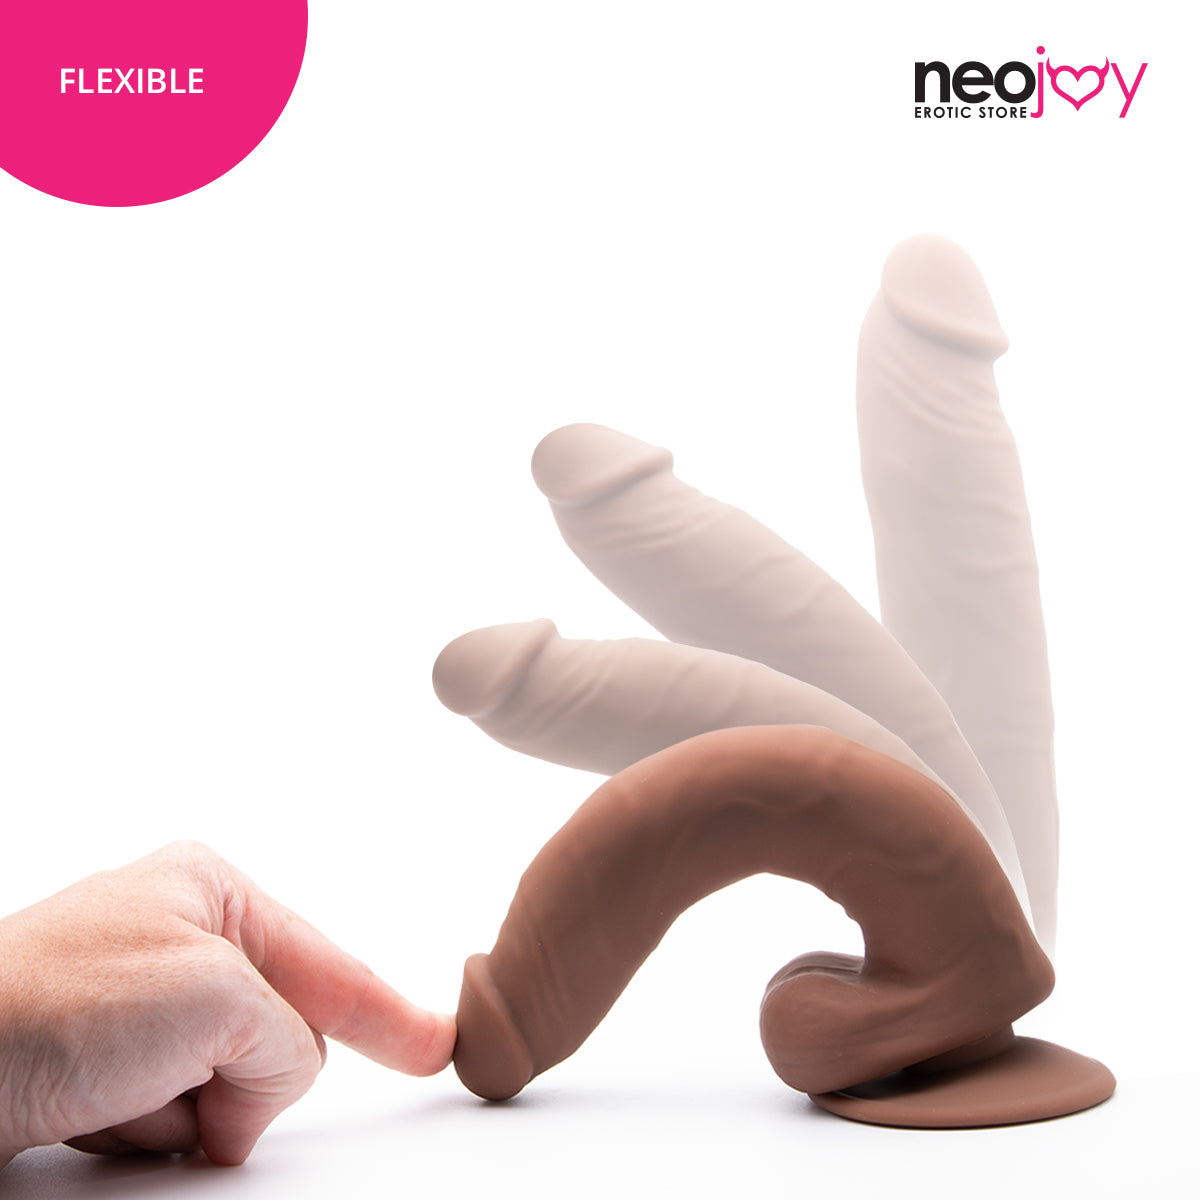 Neojoy Bigshot Realistic Dildo With Strap-On - Dong Harness Sex Toy - Brown